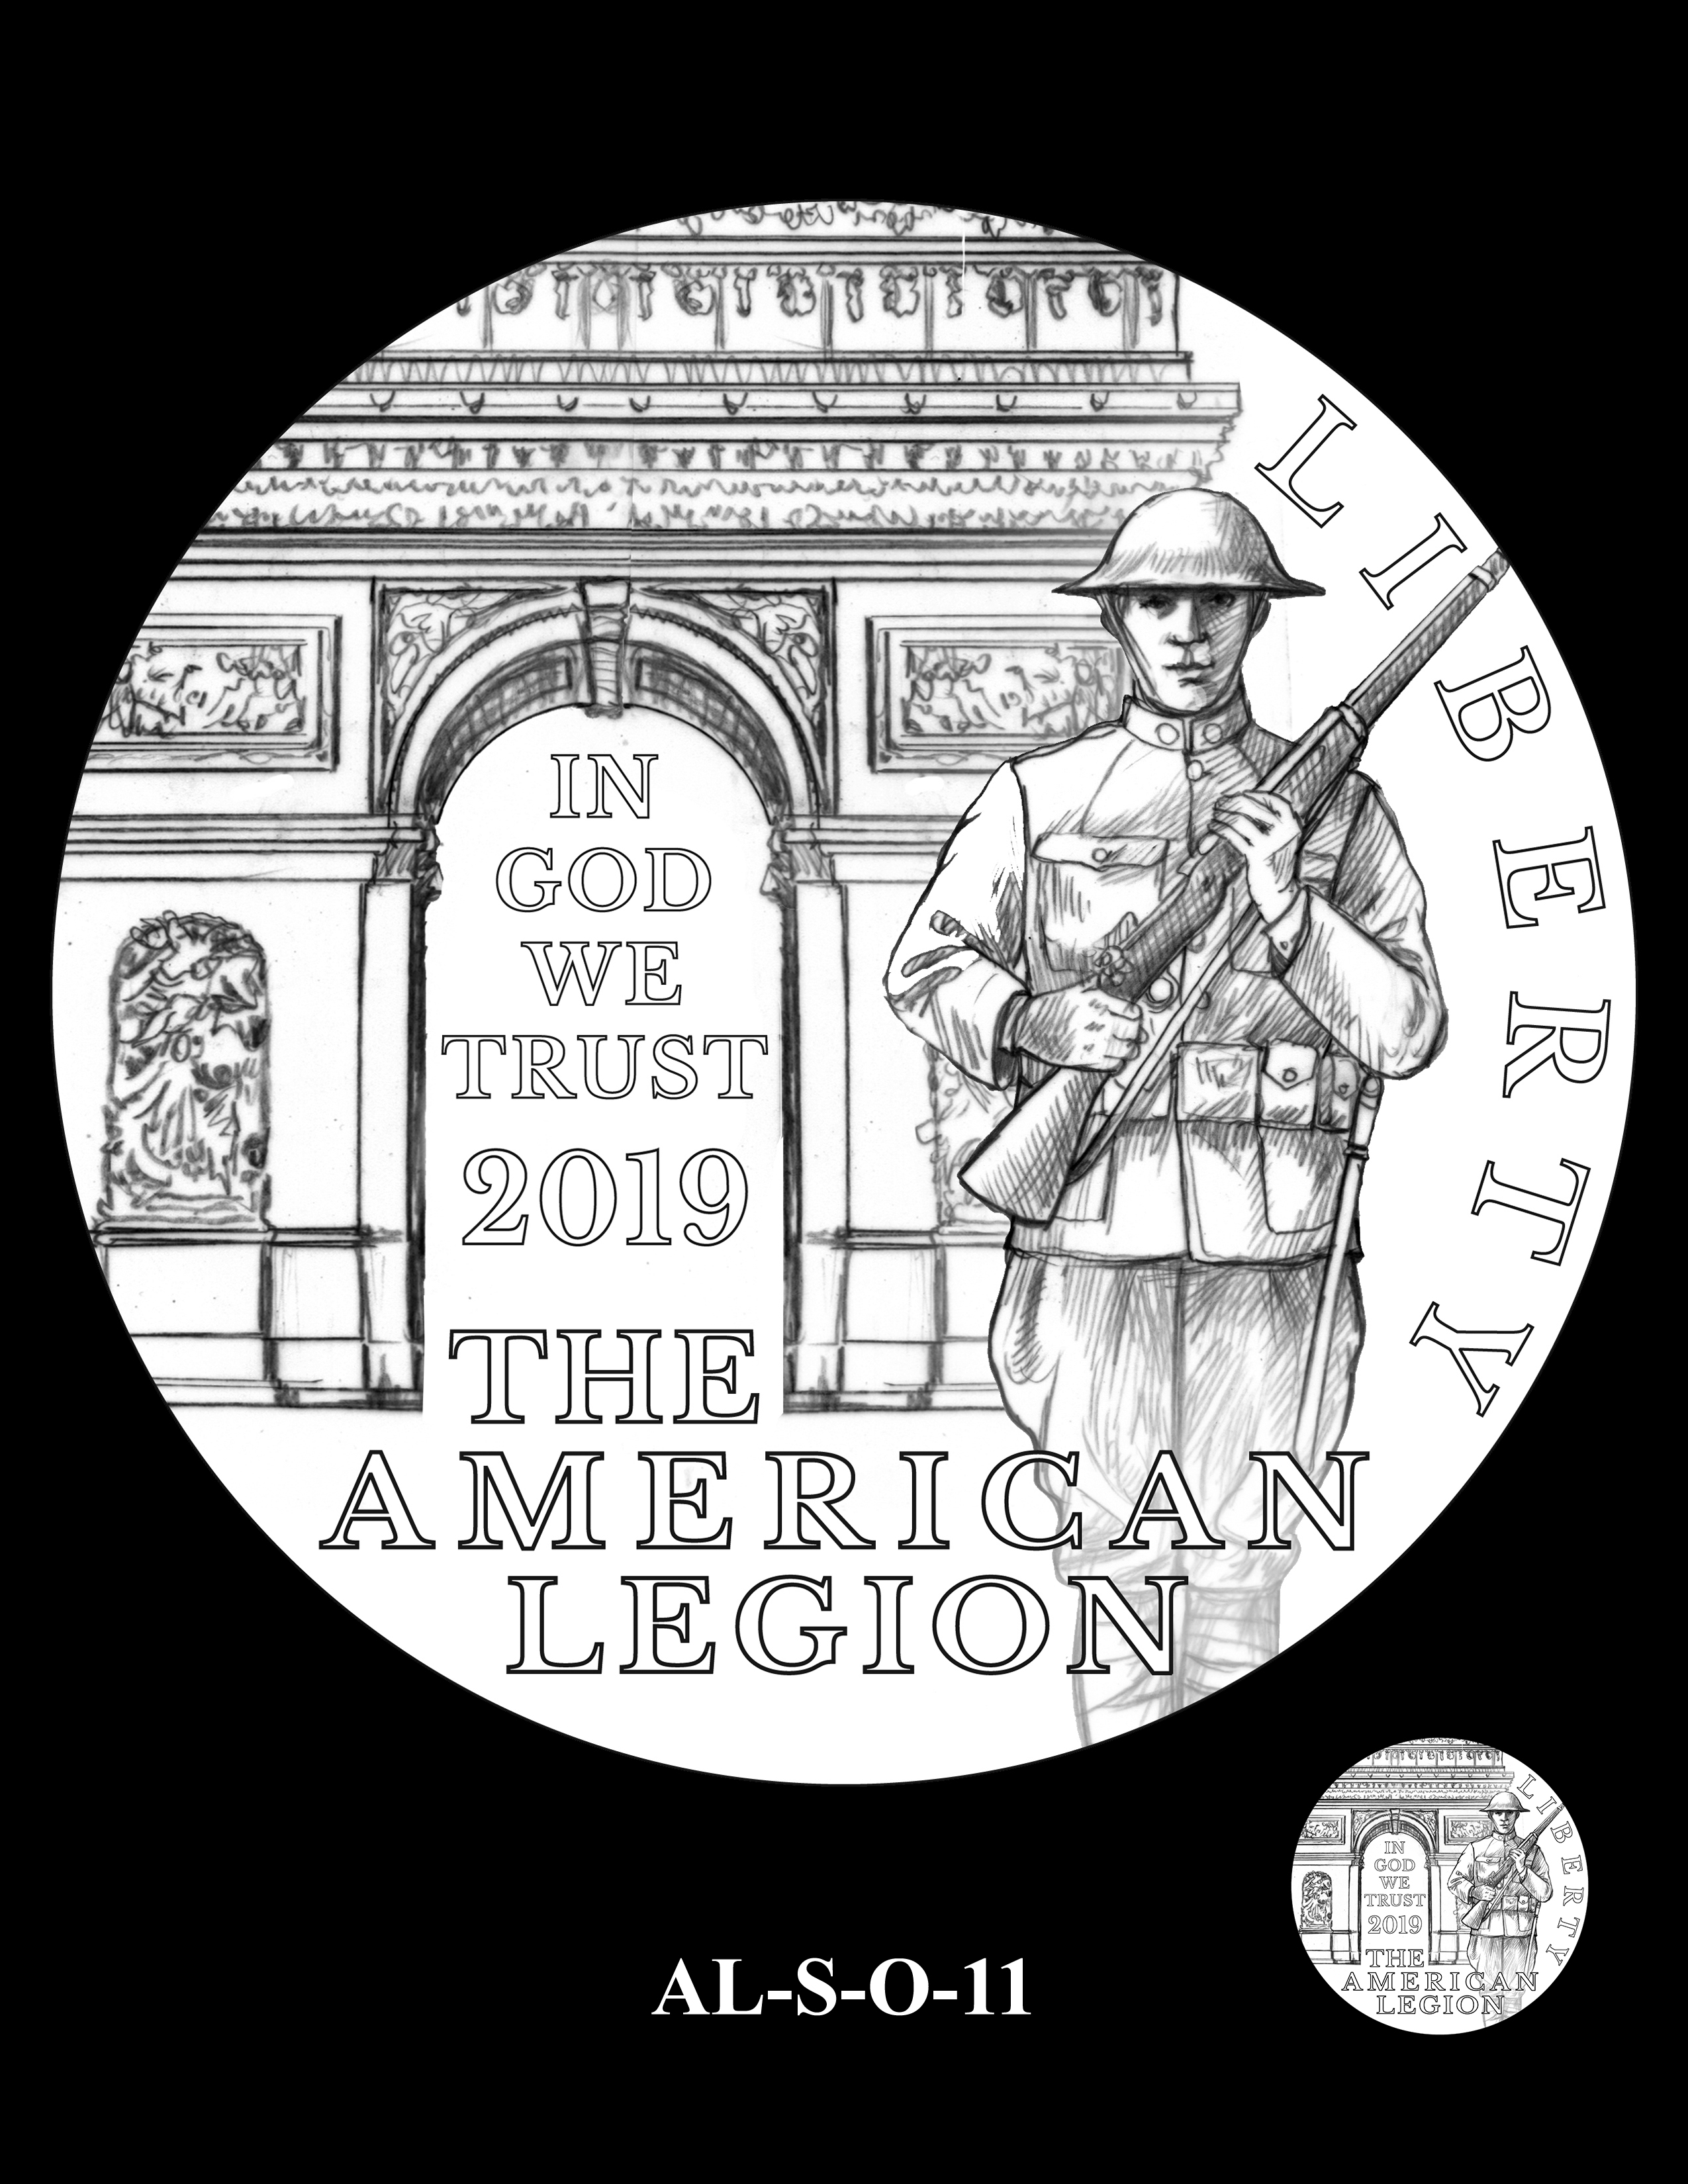 AL-S-O-11 -- 2019 American Legion 100th Anniversary Commemorative Coin Program - Silver Obverse